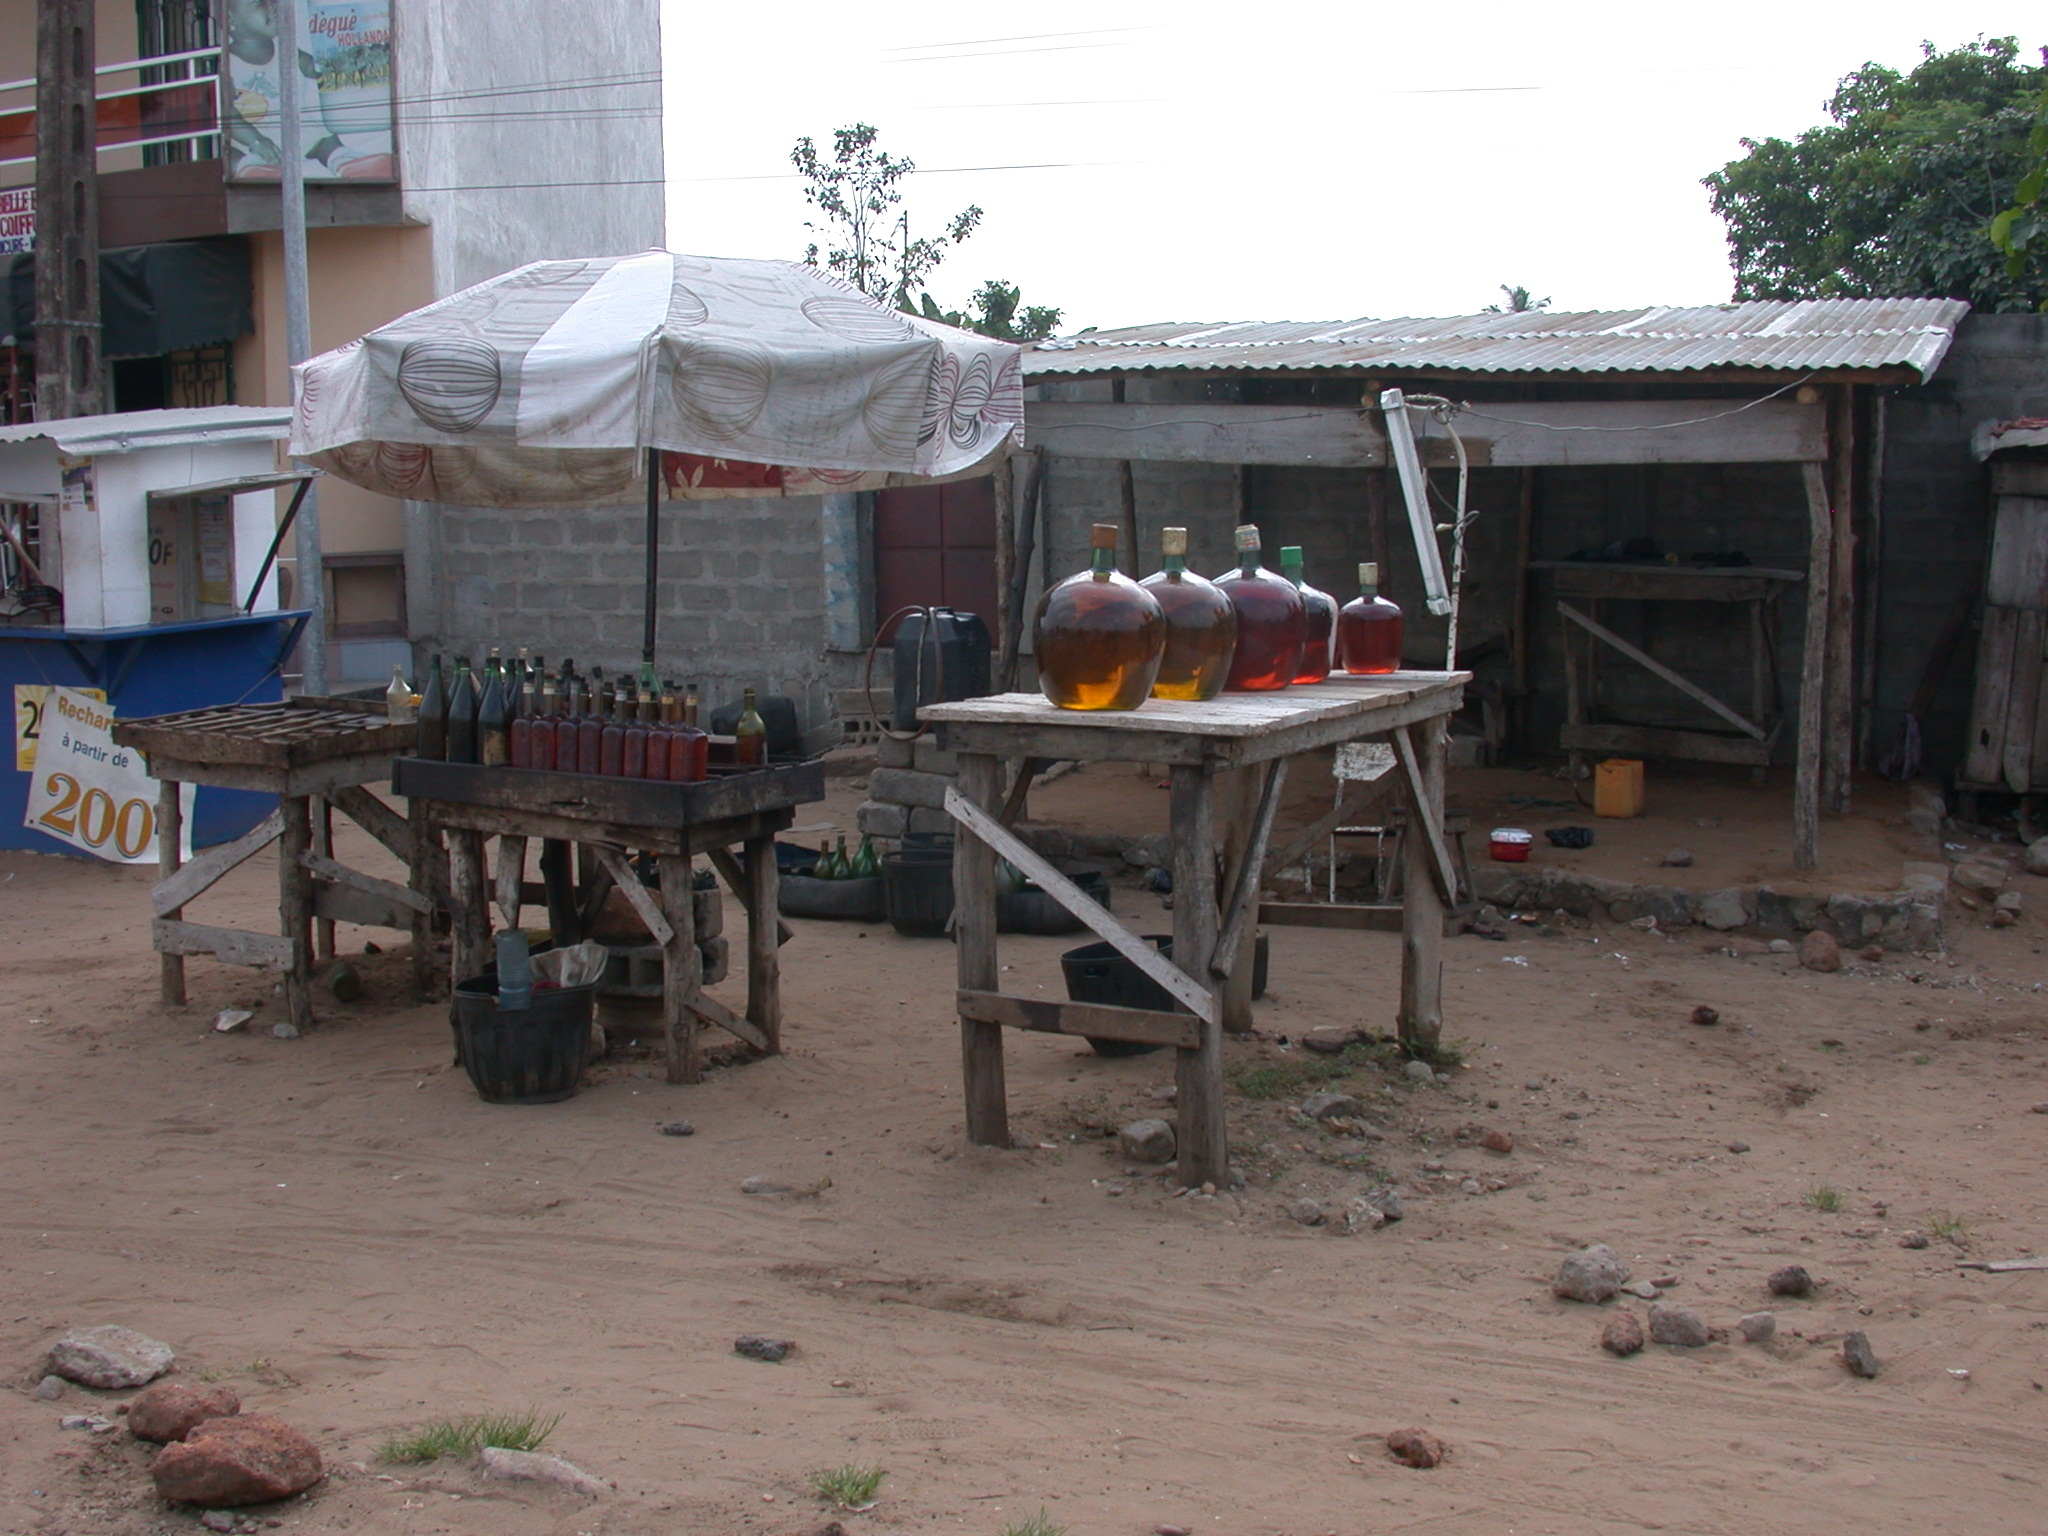 Gasoline Station on Route From Ouida to Cotonou, Benin